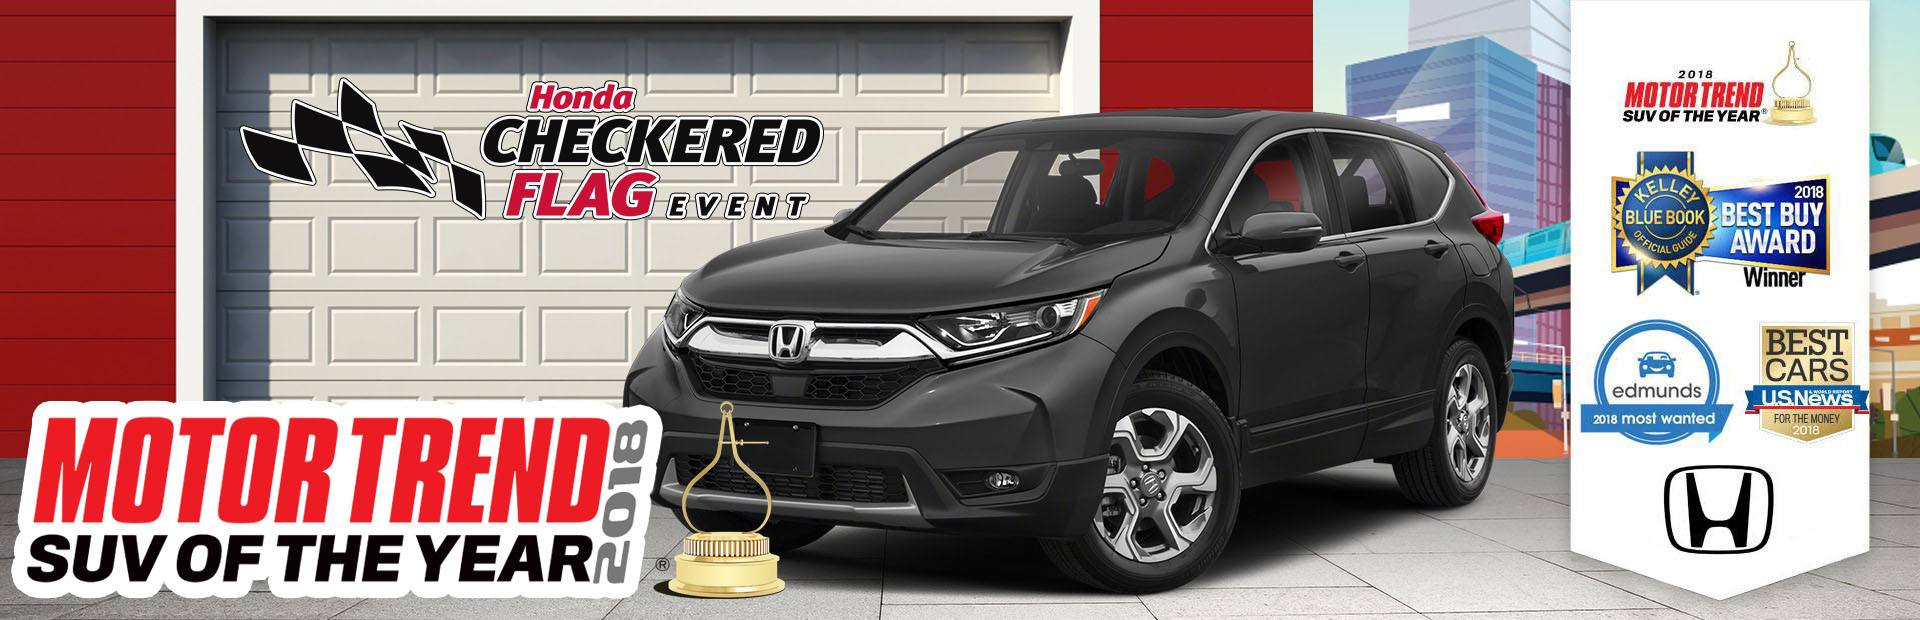 Honda-Checkered-Flag-Event-2018-CR-V-Awards-May-2018-Draft